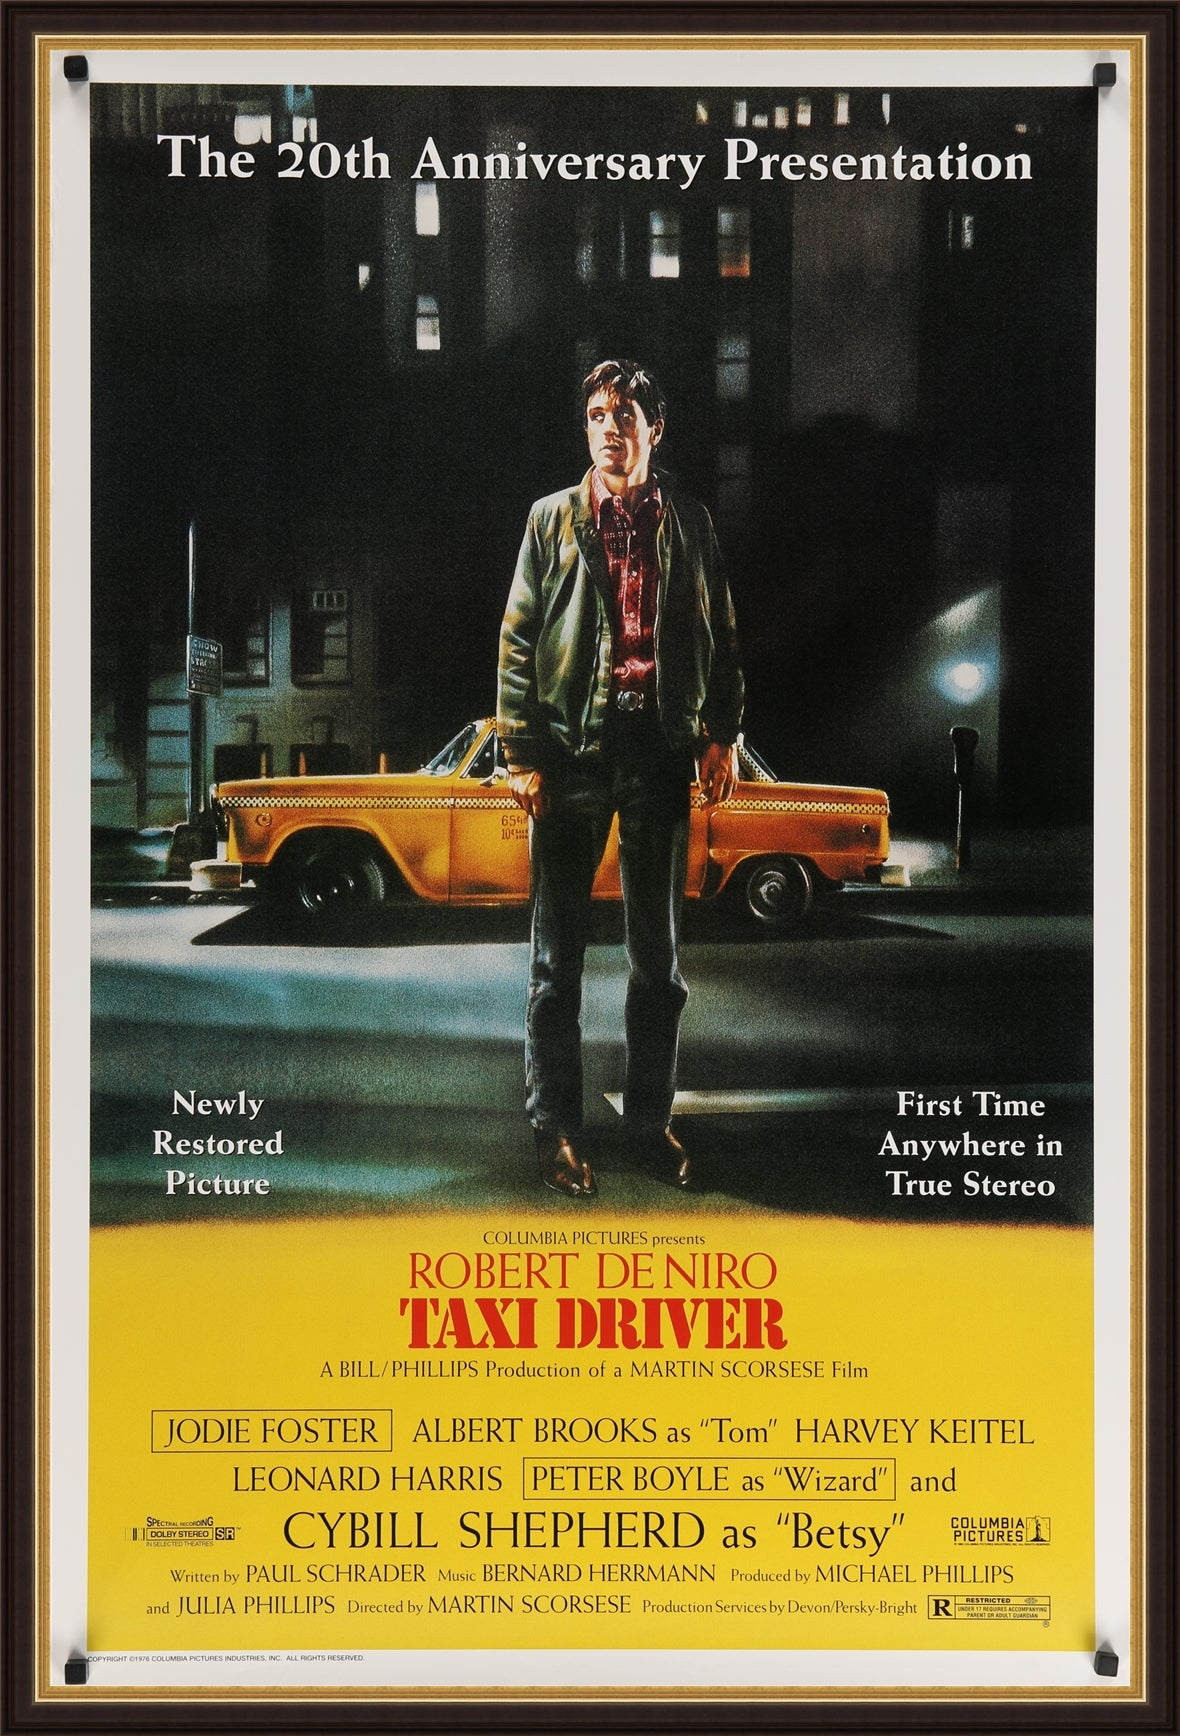 An original movie poster for the film Taxi Driver